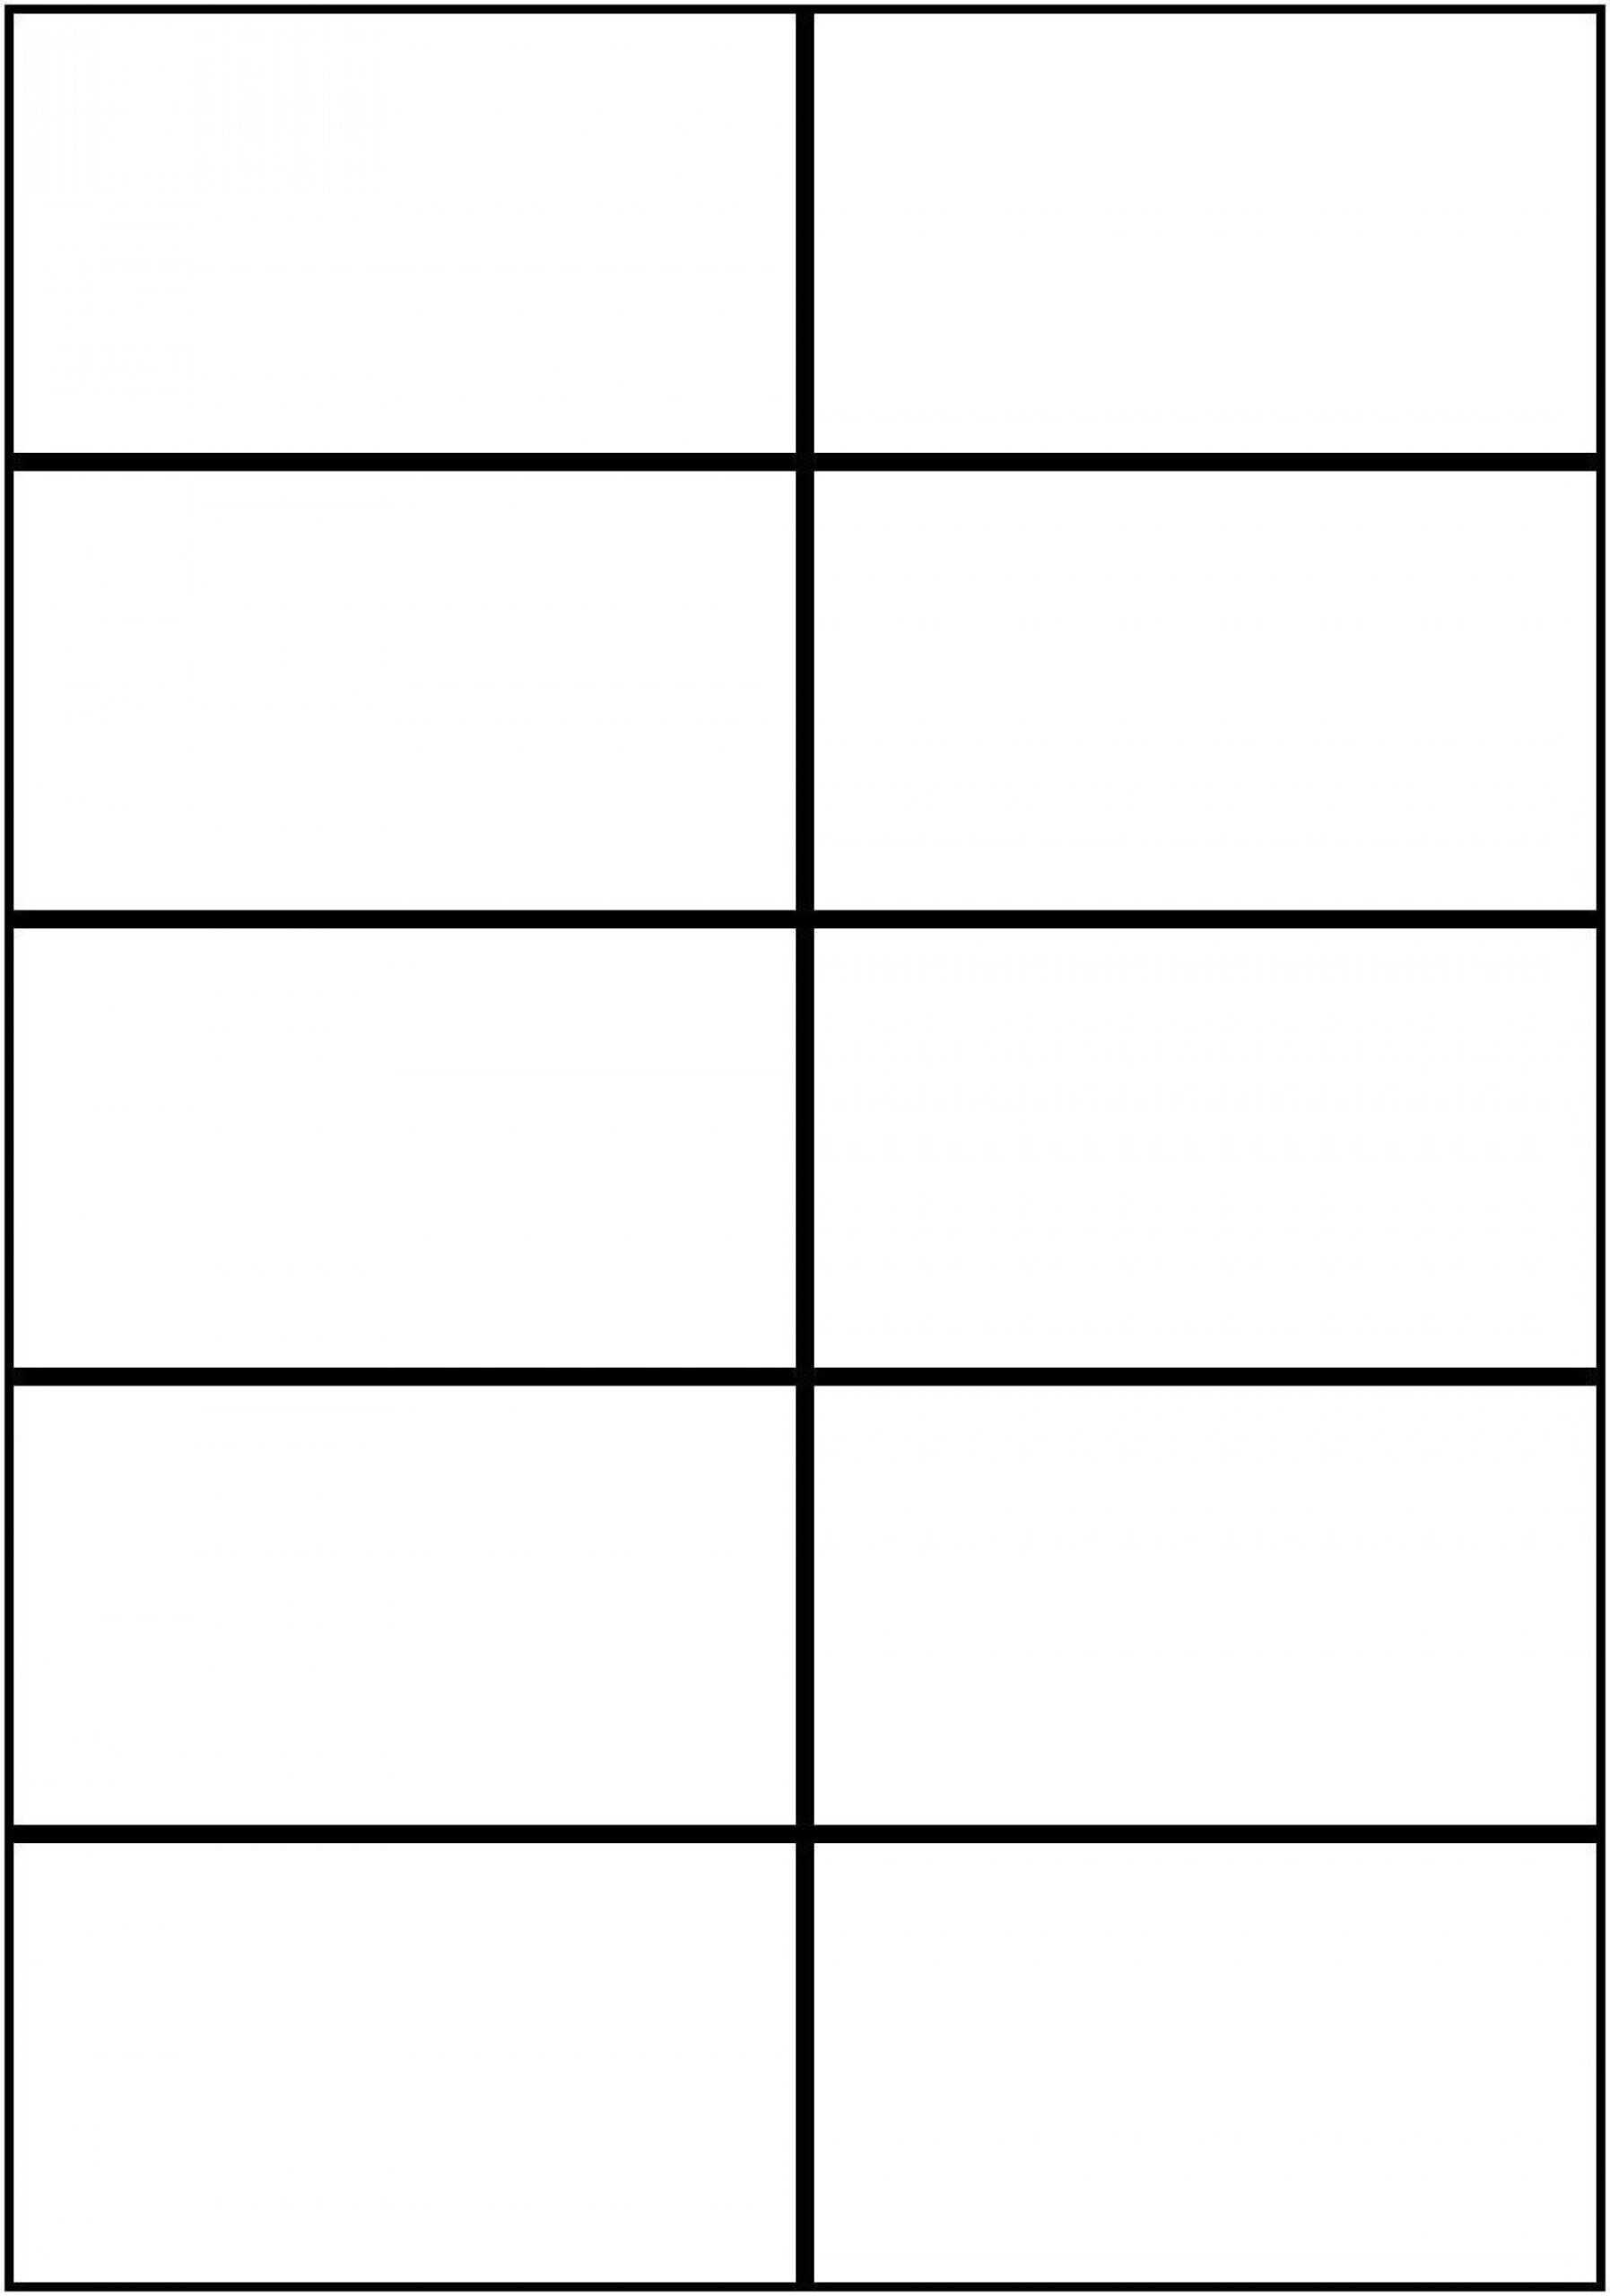 001 Free Flash Card Template Ideas Printable Cards 3X3 With Free Printable Flash Cards Template